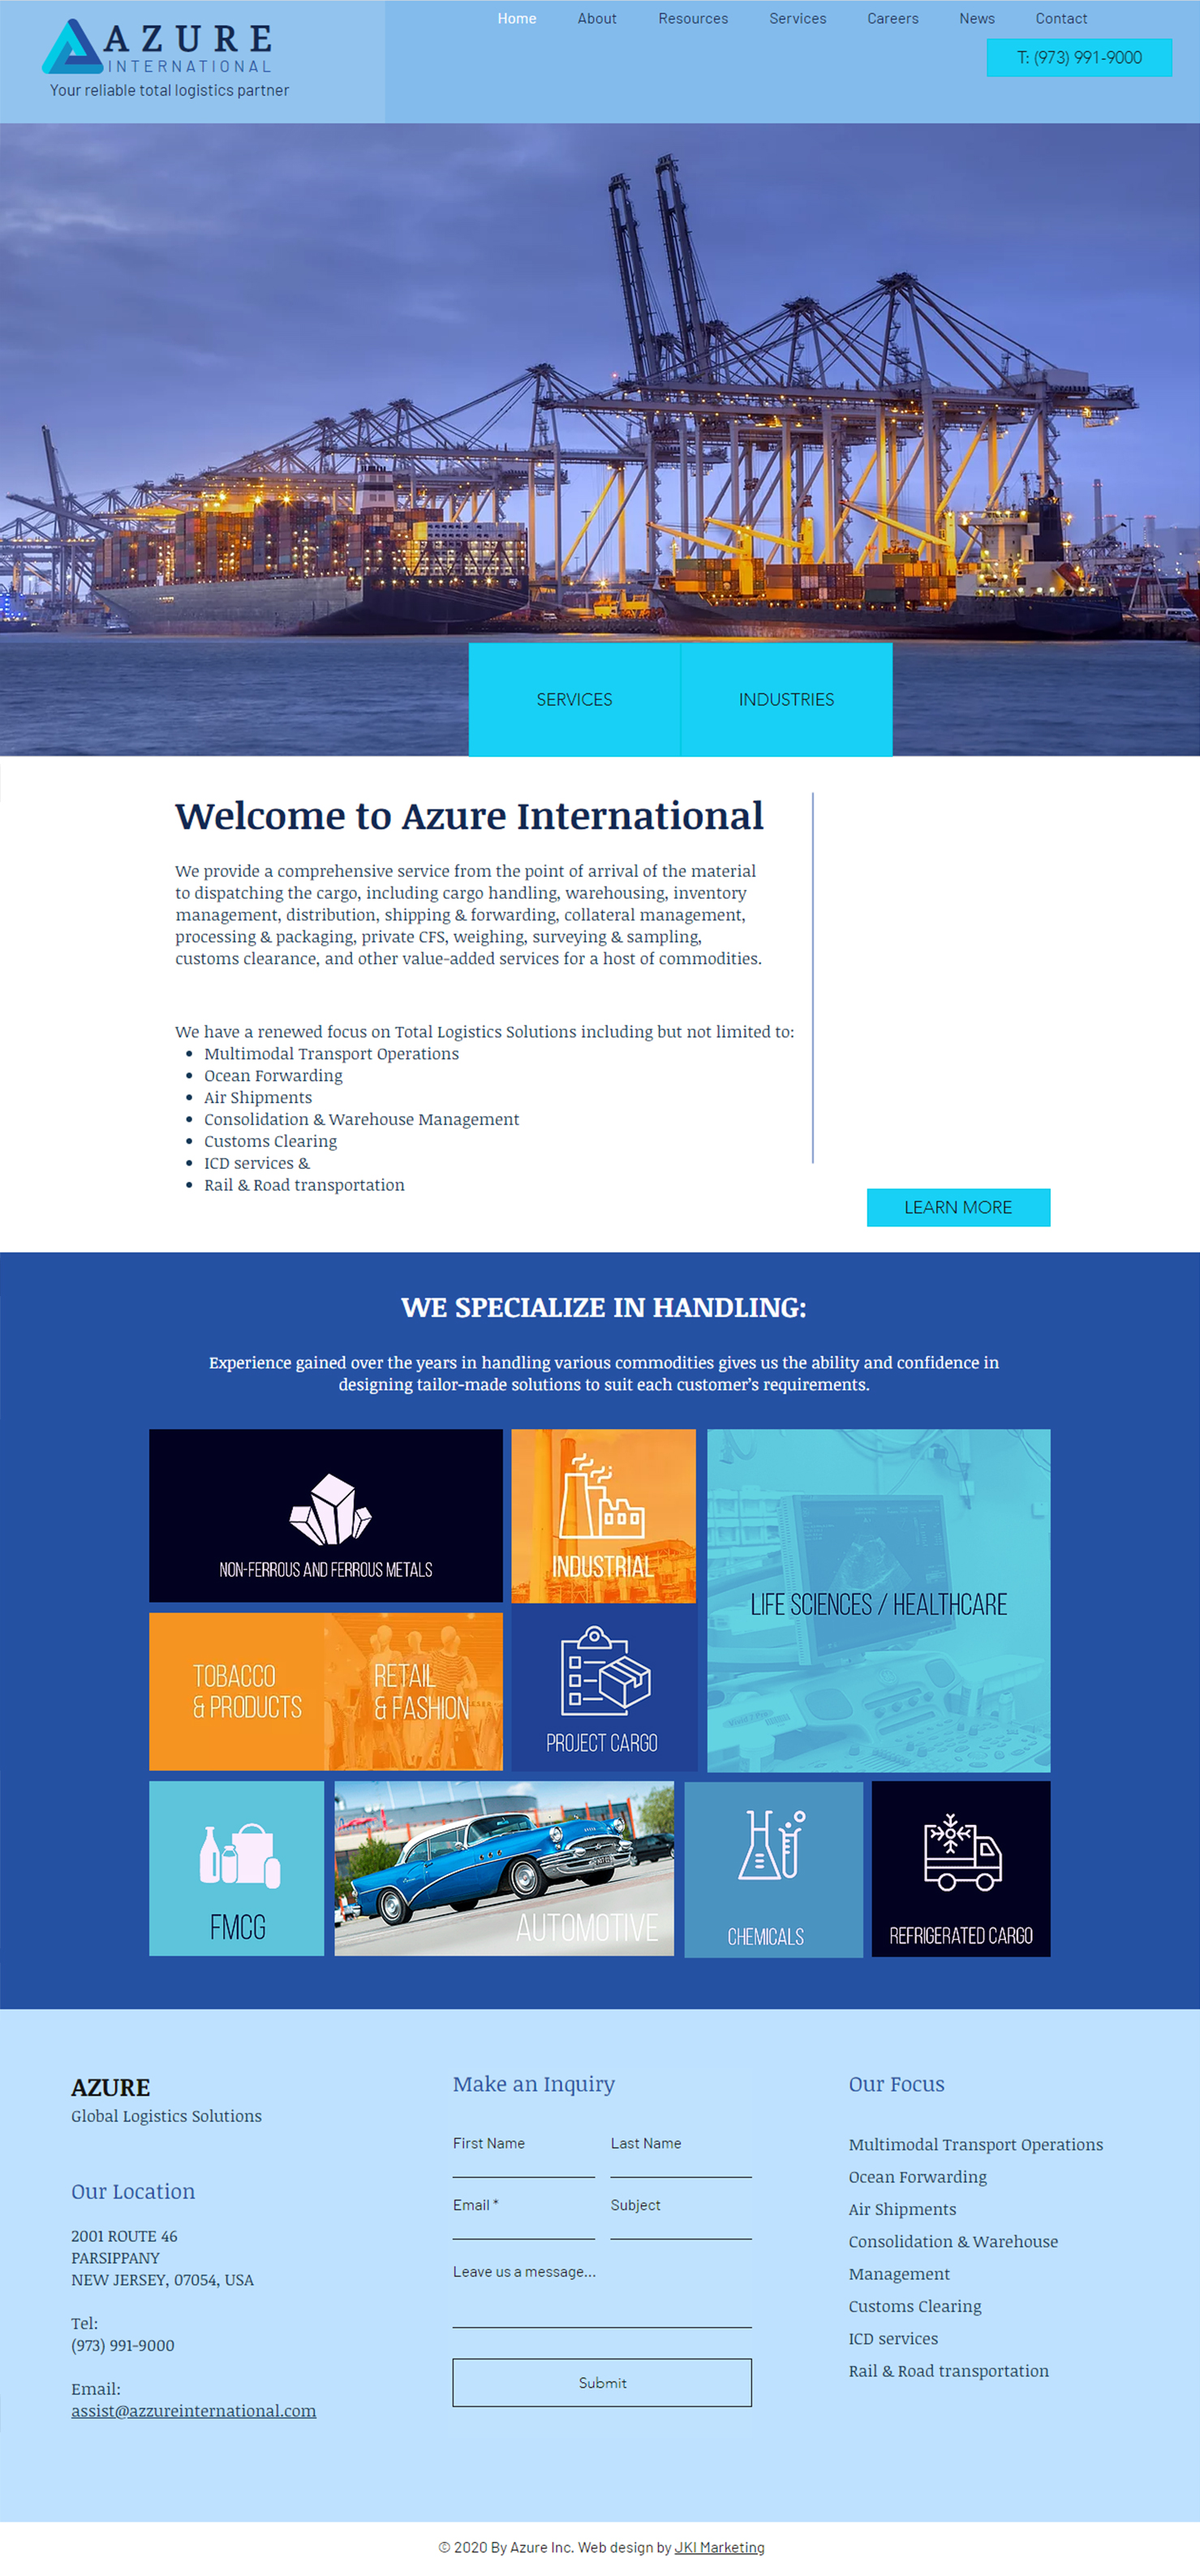 Website Design For AZURE Global Logistics Solutions